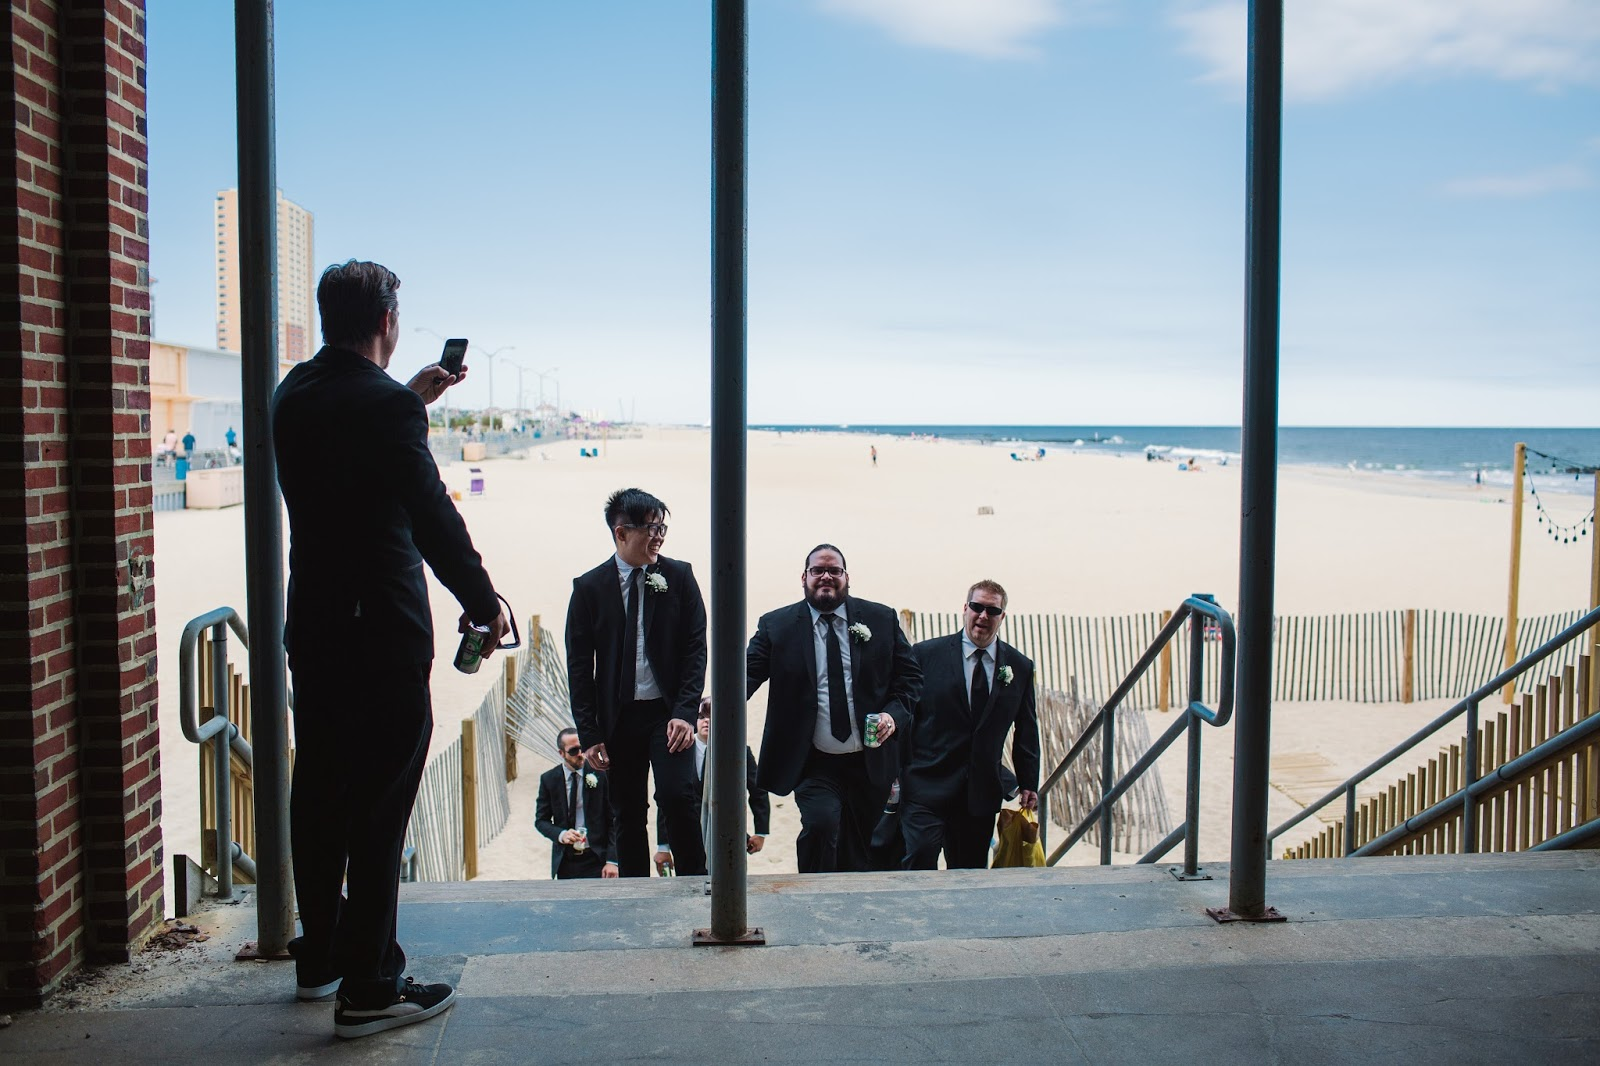 The Groom and his groomsmen at Anchor's Bend / Asbury Park Wedding Photographer - blog.cassiecastellaw.com